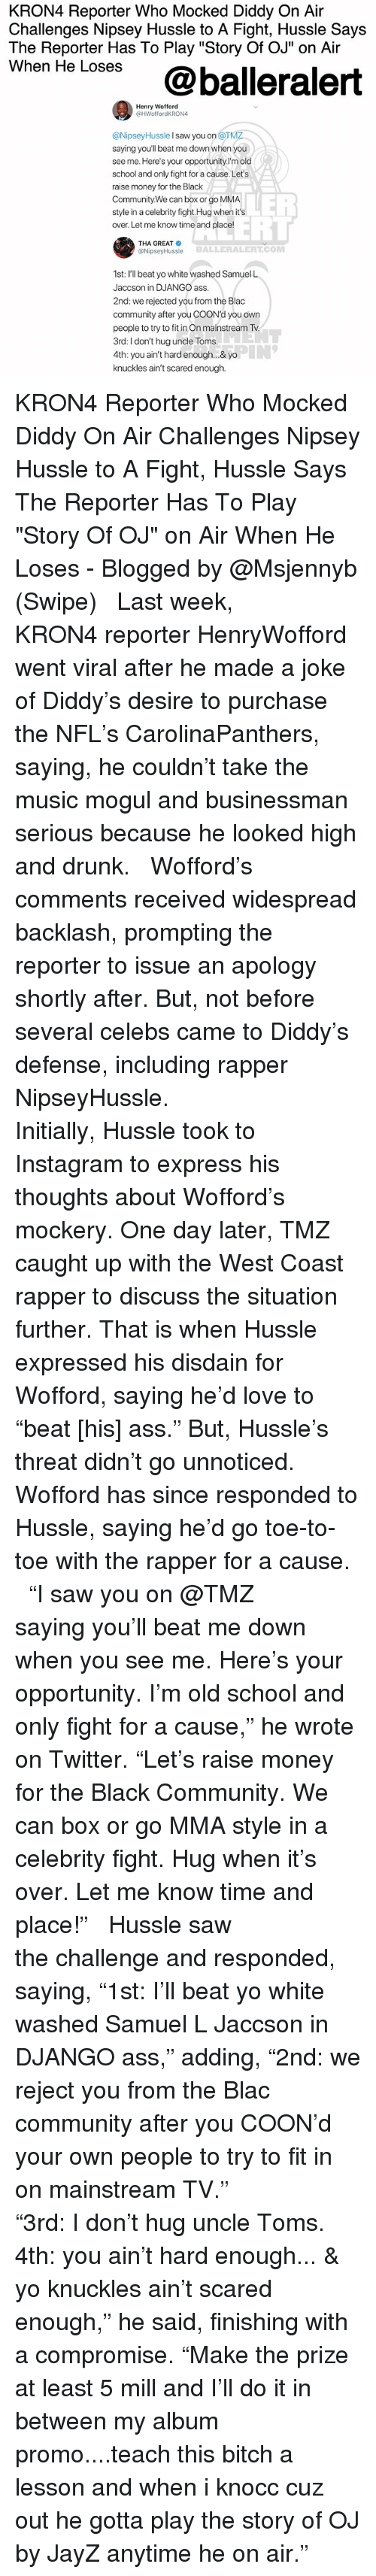 "Django: KRON4 Reporter Who Mocked Diddy On Air  Challenges Nipsey Hussle to A Fight, Hussle Says  The Reporter Has To Play ""Story Of OJ"" on Air  wnen He Loses@balleralert  Henry Wofford  @HWoffordKRON4  @NipseyHussle I saw you on @TM  saying you'll beat me down when you  see me. Here's your opportunity.l'm old  school and only fight for a cause. Let's  raise money for the Black  Community.We can box or go MMA  style in a celebrity fight.Hug when its  over. Let me know time and place!  LER  ELL  THA GREAT  @NipseyHussle  BALLERALERT.COM  1st: I'll beat yo white washed Samuel L  Jaccson in DJANGO ass  2nd: we rejected you from the Blac  community after you COON'd you own  people to try to in On mainstream Tv  3rd: I don't hug uncle Toms  4th: you ain't hard enough... & yo  knuckles ain't scared enough. KRON4 Reporter Who Mocked Diddy On Air Challenges Nipsey Hussle to A Fight, Hussle Says The Reporter Has To Play ""Story Of OJ"" on Air When He Loses - Blogged by @Msjennyb (Swipe) ⠀⠀⠀⠀⠀⠀⠀ ⠀⠀⠀⠀⠀⠀⠀ Last week, KRON4 reporter HenryWofford went viral after he made a joke of Diddy's desire to purchase the NFL's CarolinaPanthers, saying, he couldn't take the music mogul and businessman serious because he looked high and drunk. ⠀⠀⠀⠀⠀⠀⠀ ⠀⠀⠀⠀⠀⠀⠀ Wofford's comments received widespread backlash, prompting the reporter to issue an apology shortly after. But, not before several celebs came to Diddy's defense, including rapper NipseyHussle. ⠀⠀⠀⠀⠀⠀⠀ ⠀⠀⠀⠀⠀⠀⠀ Initially, Hussle took to Instagram to express his thoughts about Wofford's mockery. One day later, TMZ caught up with the West Coast rapper to discuss the situation further. That is when Hussle expressed his disdain for Wofford, saying he'd love to ""beat [his] ass."" But, Hussle's threat didn't go unnoticed. Wofford has since responded to Hussle, saying he'd go toe-to-toe with the rapper for a cause. ⠀⠀⠀⠀⠀⠀⠀ ⠀⠀⠀⠀⠀⠀⠀ ""I saw you on @TMZ saying you'll beat me down when you see me. Here's your opportunity. I'm old school and only fight for a cause,"" he wrote on Twitter. ""Let's raise money for the Black Community. We can box or go MMA style in a celebrity fight. Hug when it's over. Let me know time and place!"" ⠀⠀⠀⠀⠀⠀⠀ ⠀⠀⠀⠀⠀⠀⠀ Hussle saw the challenge and responded, saying, ""1st: I'll beat yo white washed Samuel L Jaccson in DJANGO ass,"" adding, ""2nd: we reject you from the Blac community after you COON'd your own people to try to fit in on mainstream TV."" ⠀⠀⠀⠀⠀⠀⠀ ⠀⠀⠀⠀⠀⠀⠀ ""3rd: I don't hug uncle Toms. 4th: you ain't hard enough... & yo knuckles ain't scared enough,"" he said, finishing with a compromise. ""Make the prize at least 5 mill and I'll do it in between my album promo....teach this bitch a lesson and when i knocc cuz out he gotta play the story of OJ by JayZ anytime he on air."""